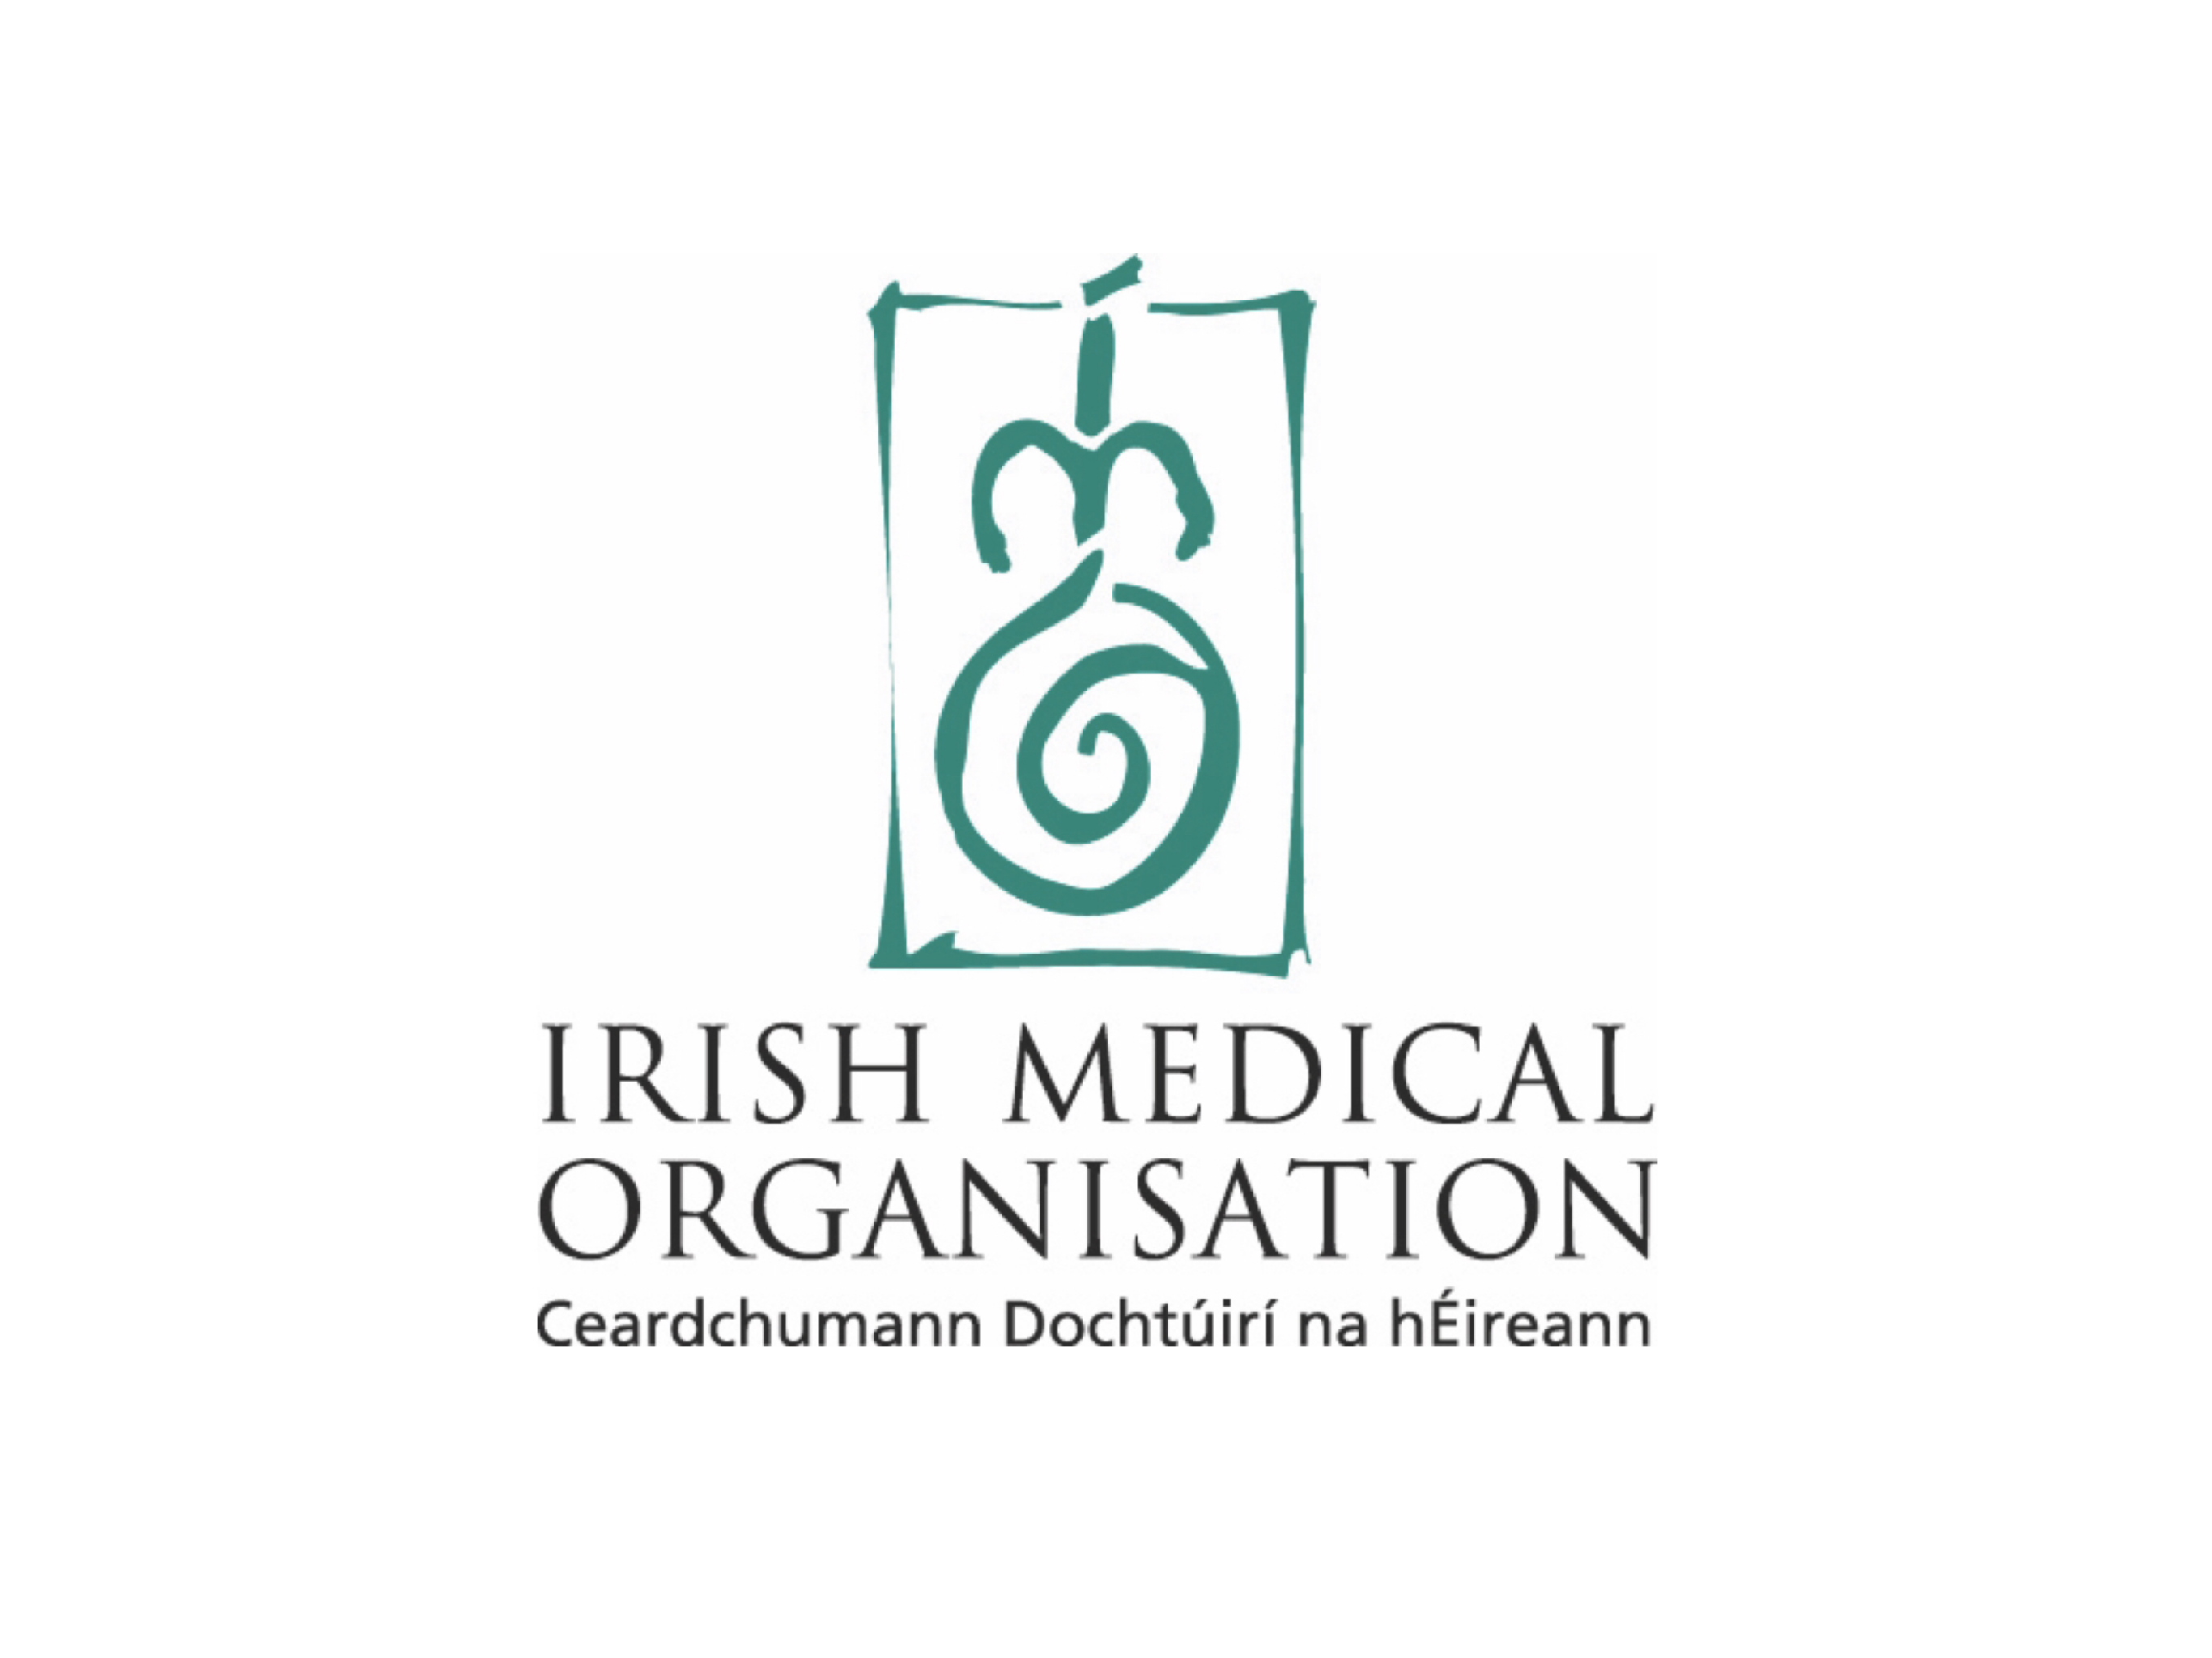 IMO Describes Meeting with Minister for Health on Consultant Contract as 'Constructive'